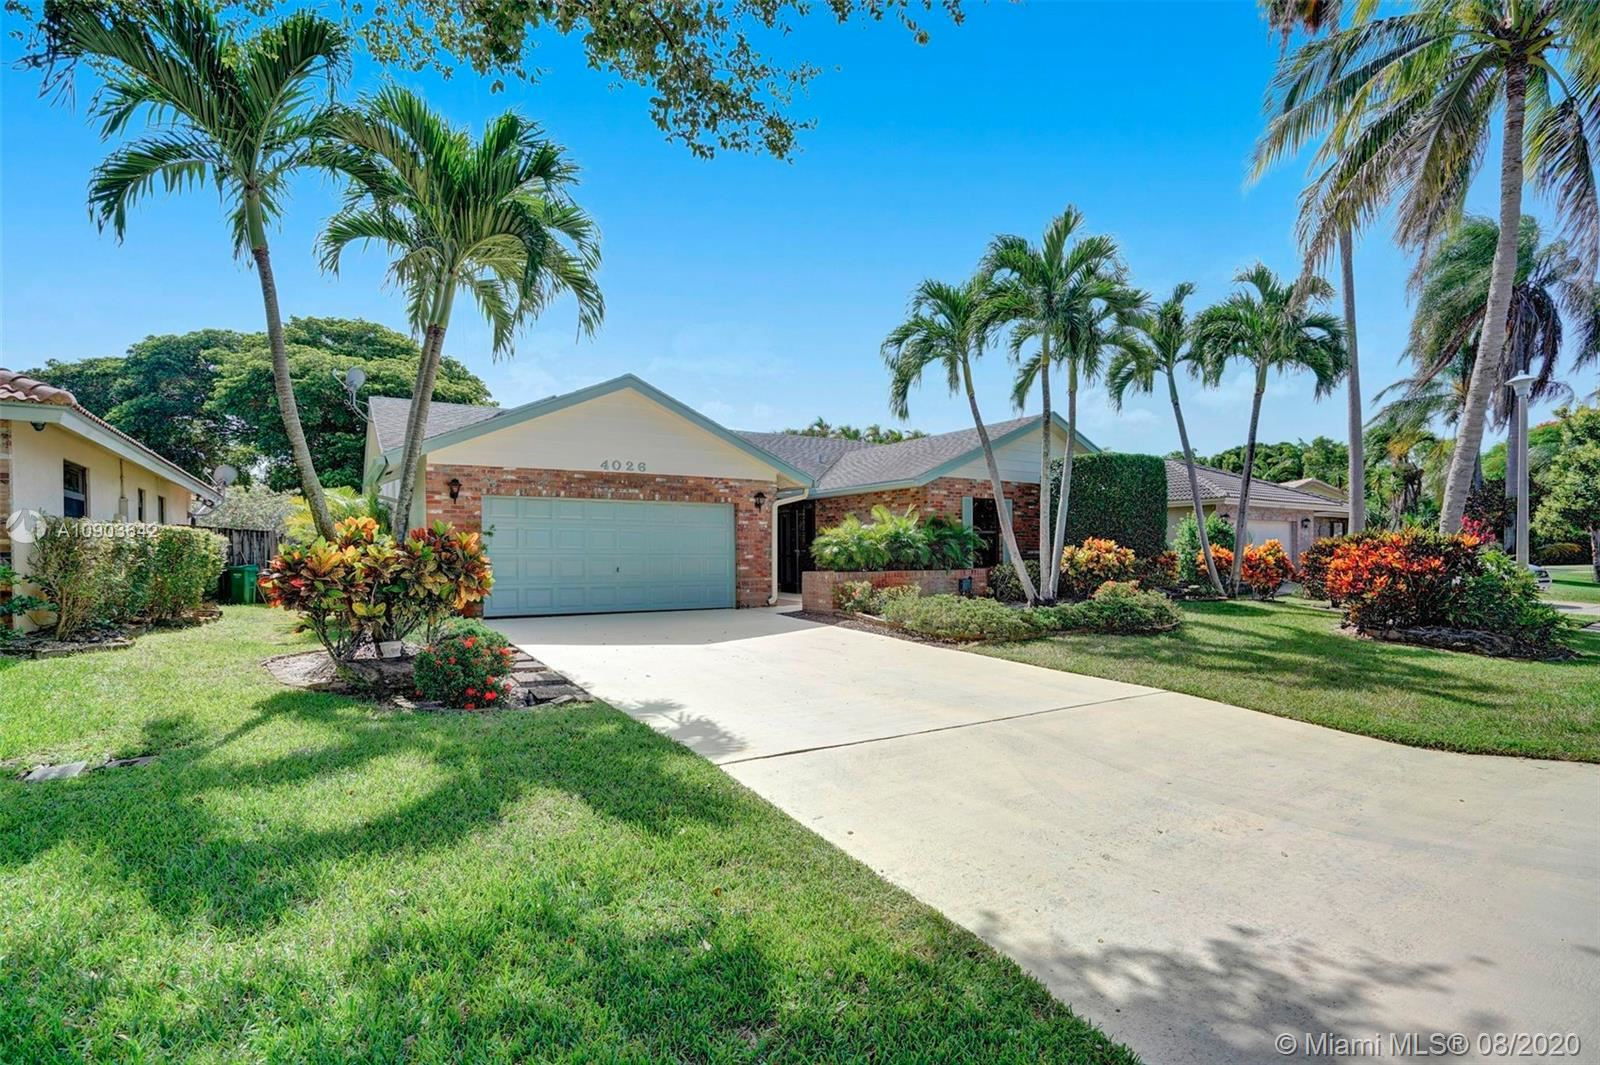 4026 NW 70th Ave, Coral Springs, FL 33065 - #: A10903642